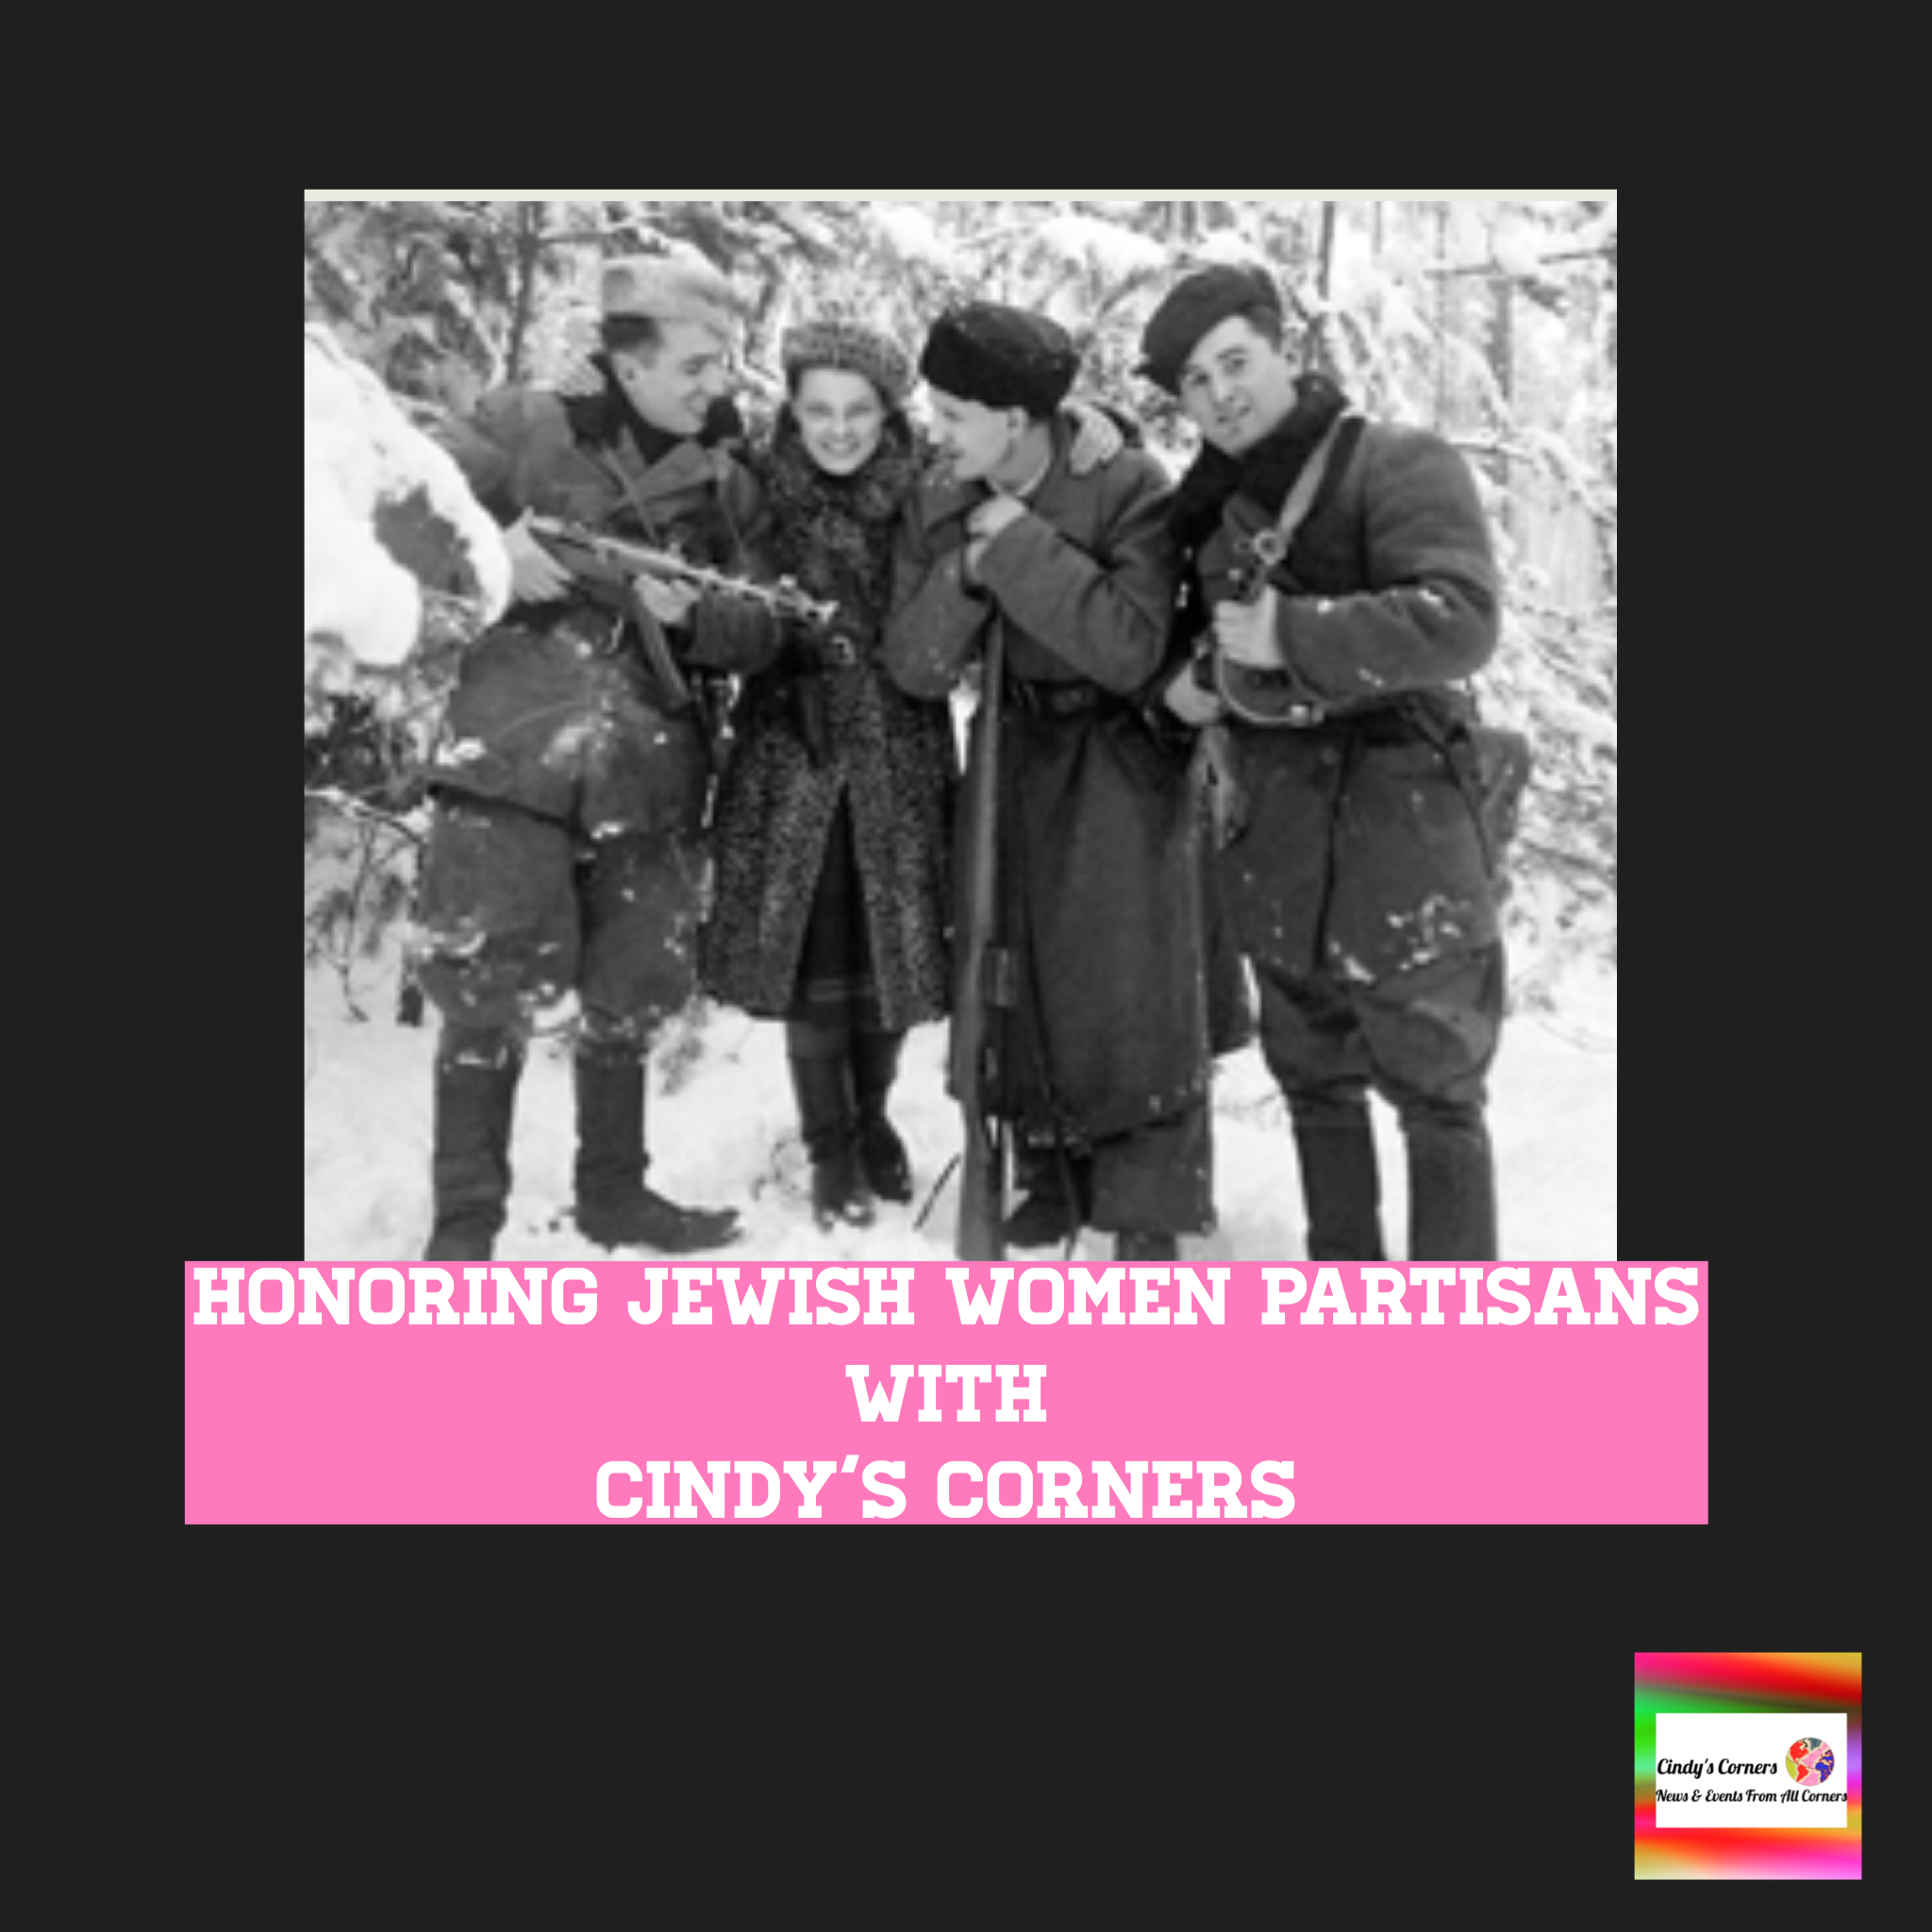 Honoring Jewish women partisans with Cindy's Corners